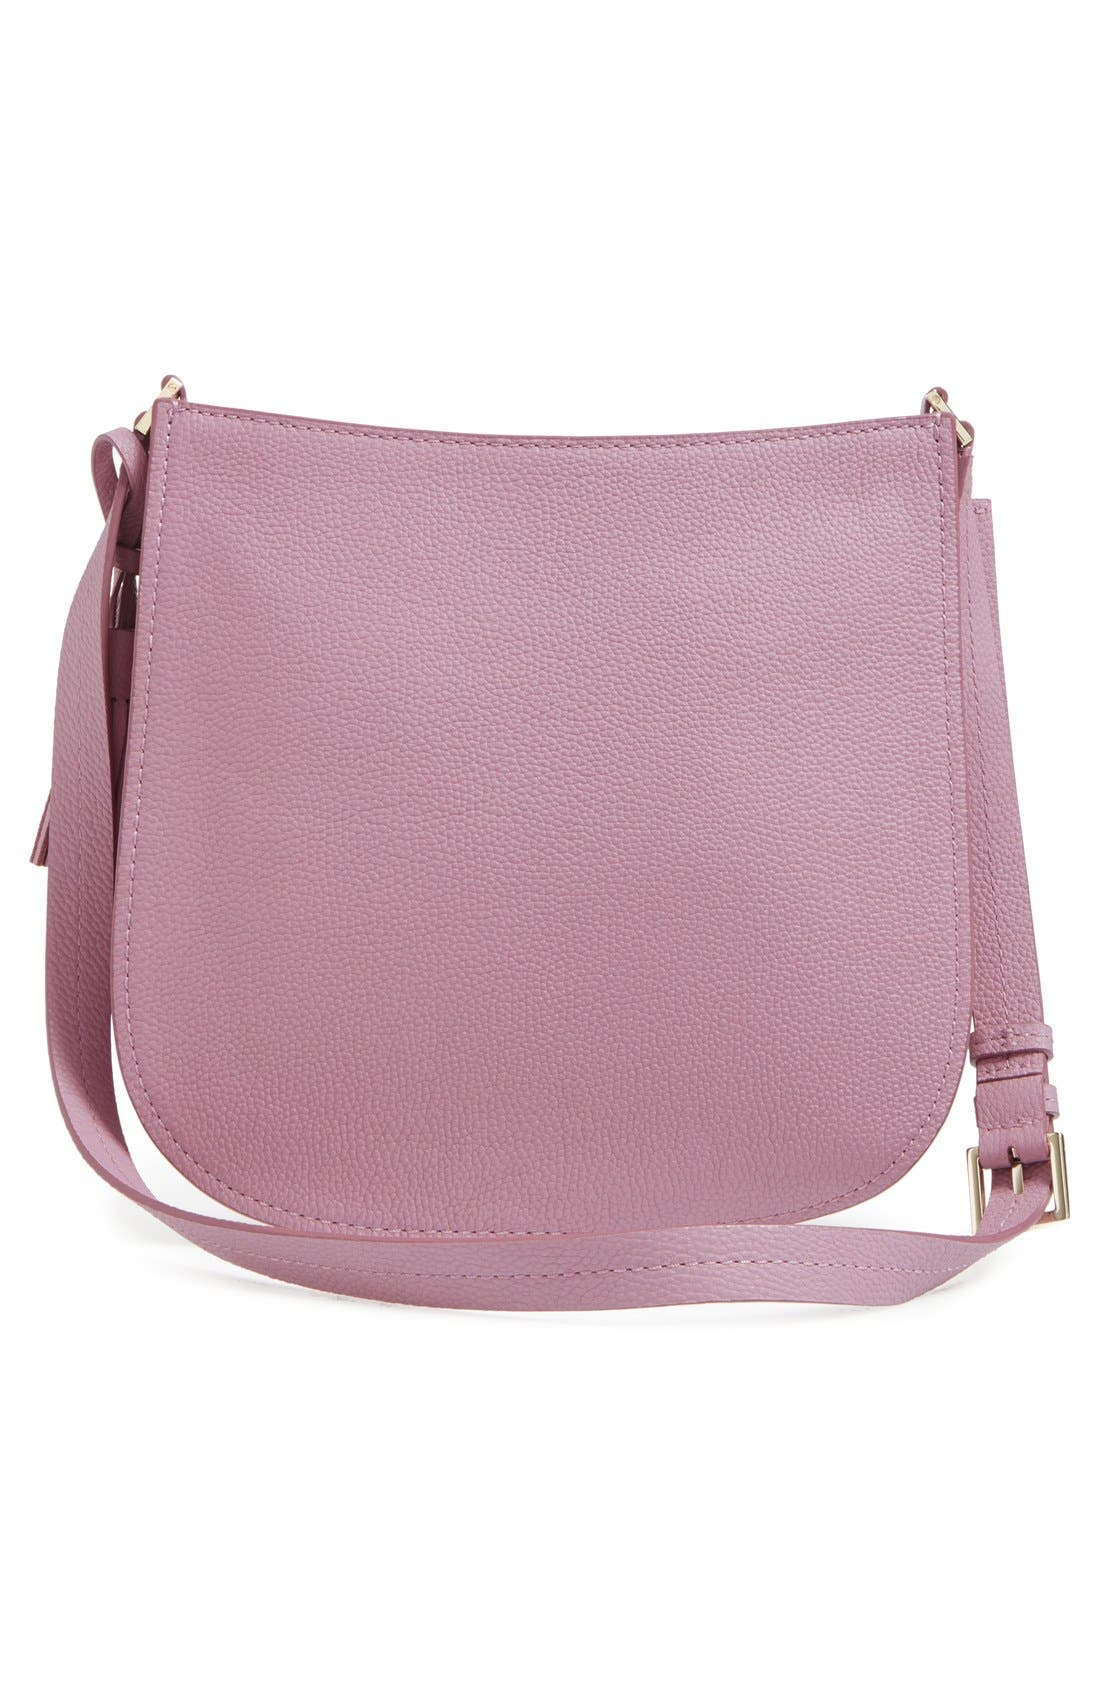 Alternate Image 2  - kate spade new york 'orchard street - hemsley' leather shoulder bag